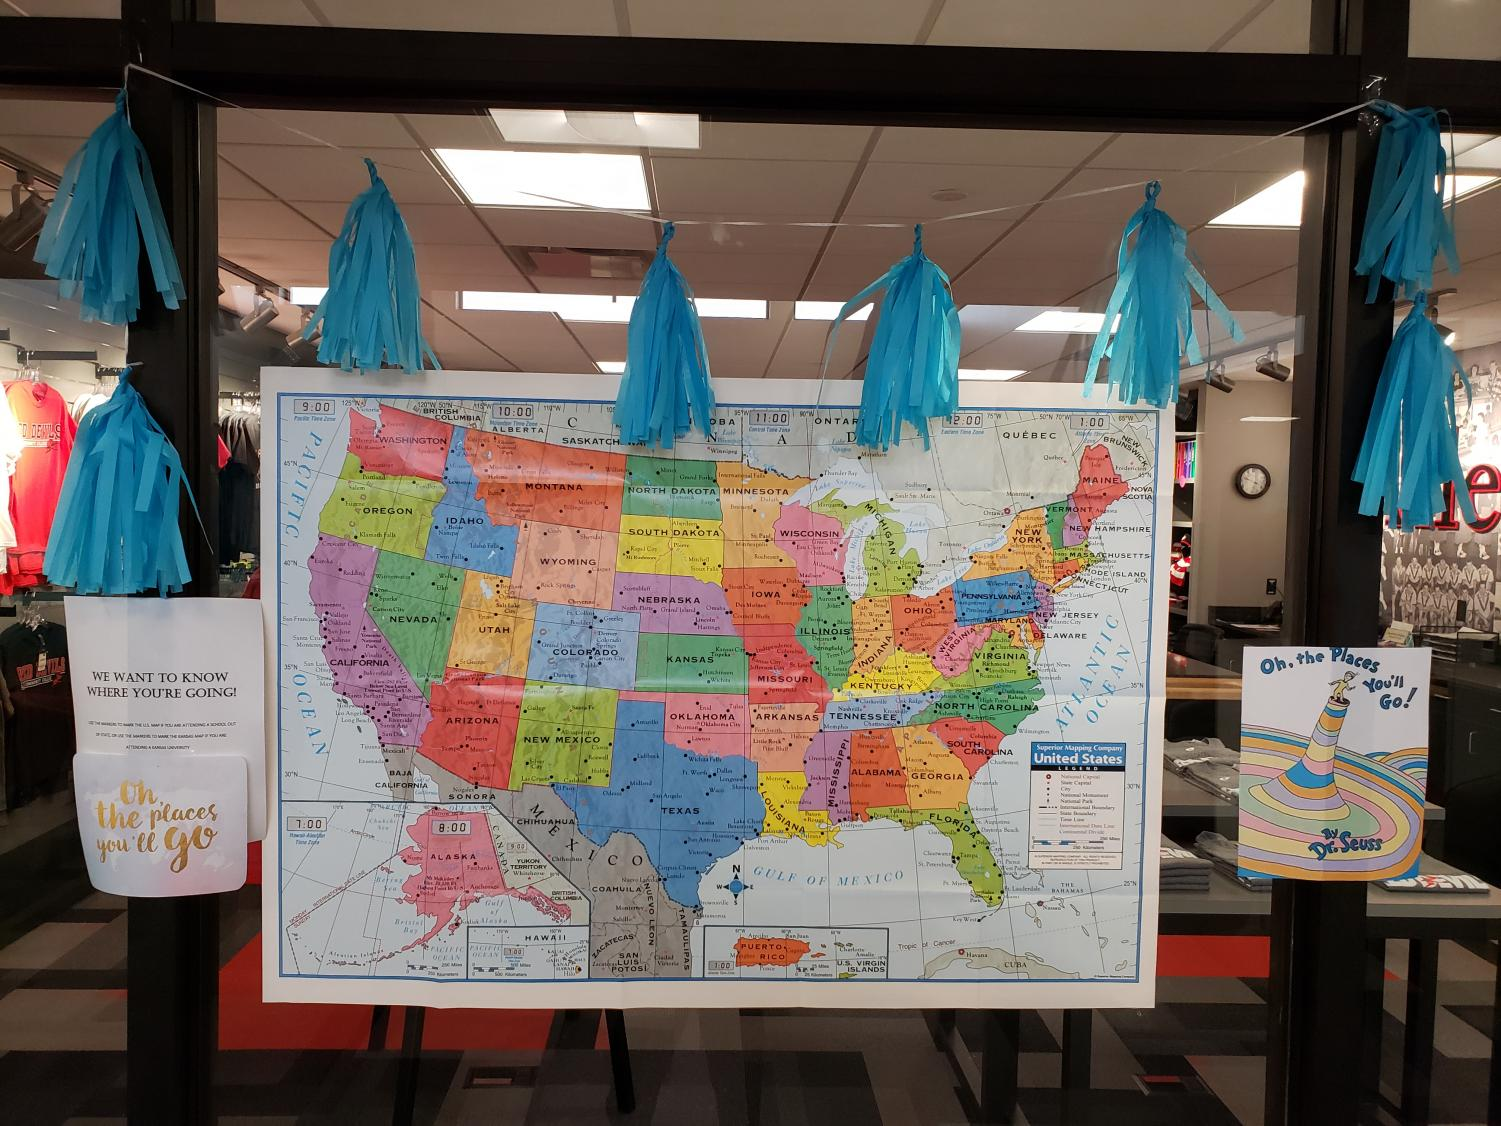 During+the+event%2C+sophomores+were+encouraged+to+plot+on+the+map+where+they+will+be+next+fall%21+